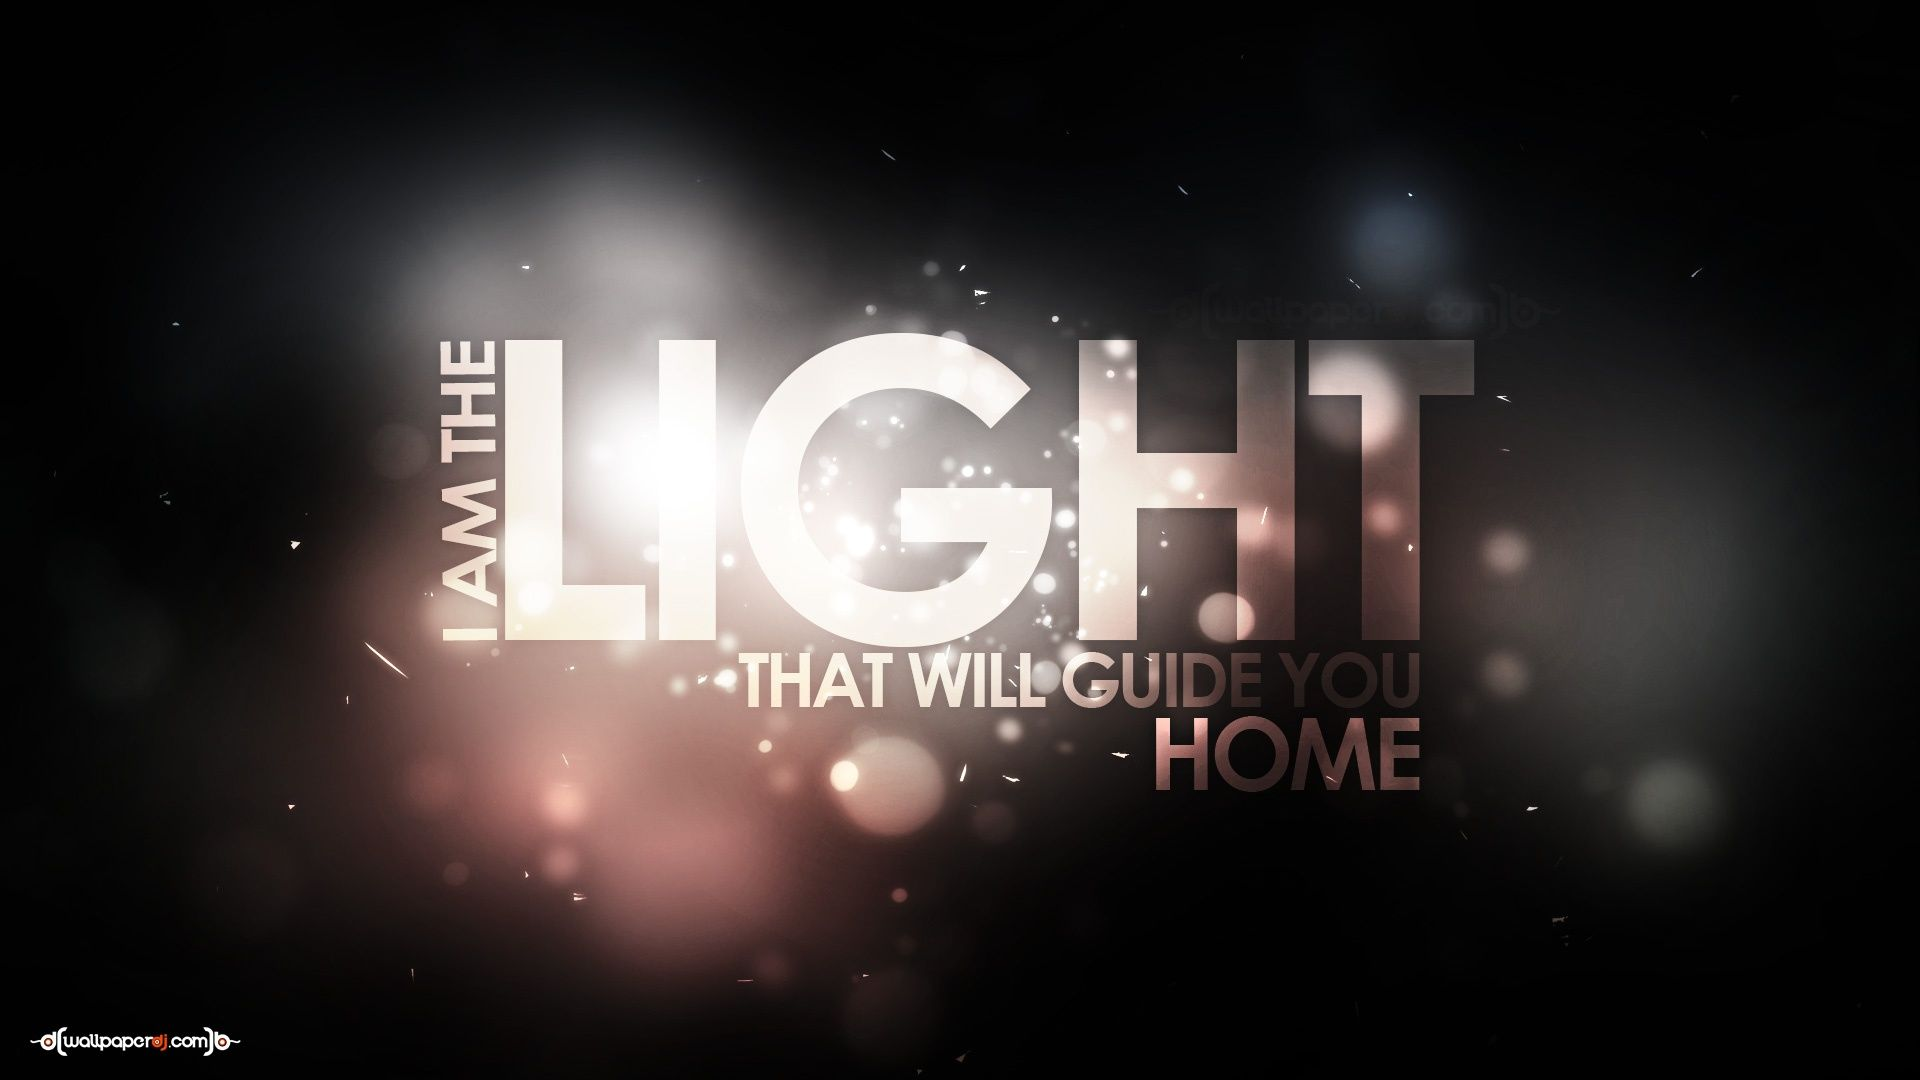 1920x1080 1920x1080 I Am The Light wallpaper, music and dance wallpapers